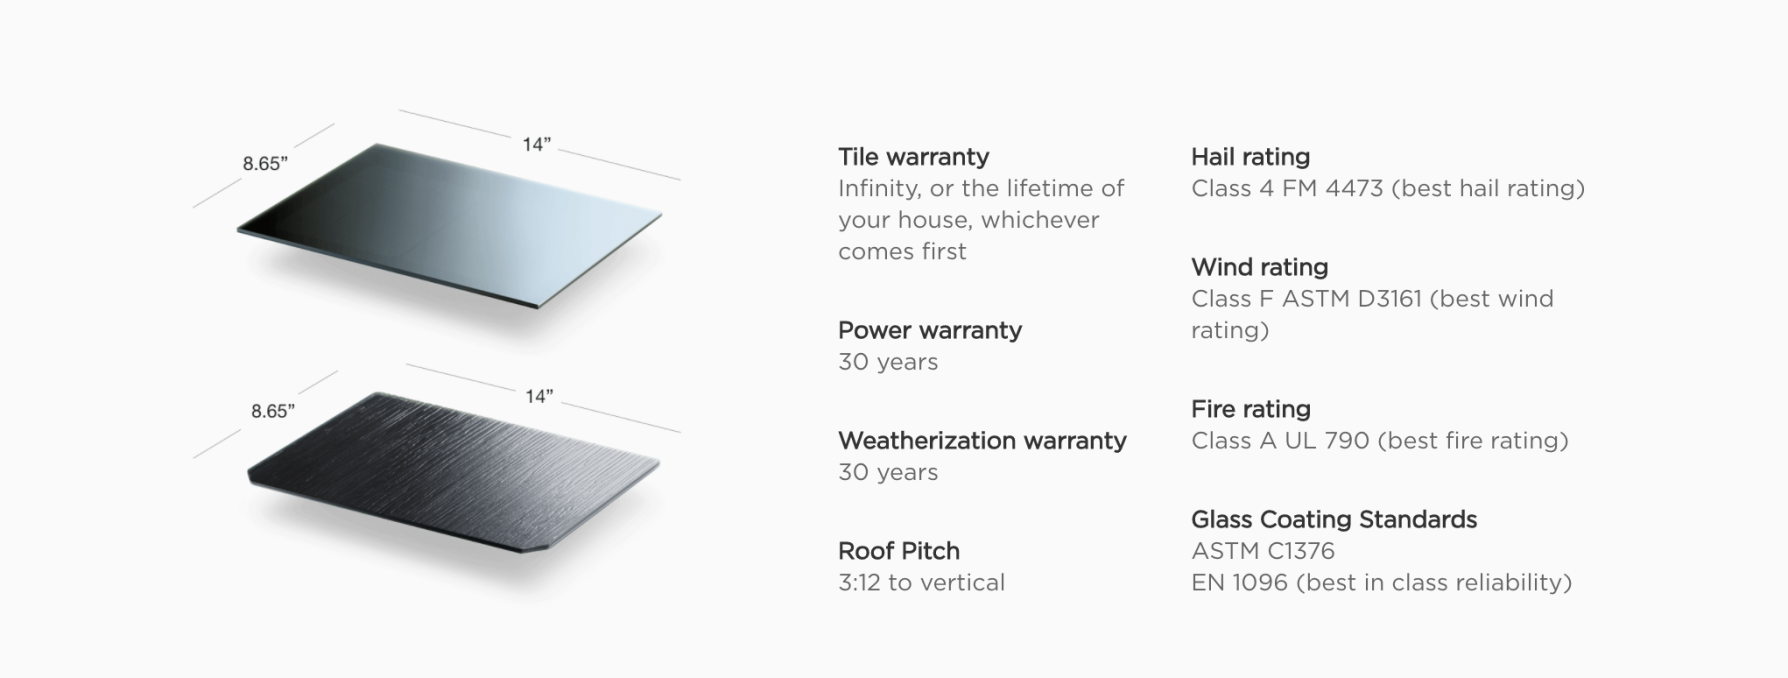 Tesla Releases Details Of Its Solar Roof Tiles Cheaper Than Regular Roof With Infinity Warranty And 30 Yrs Of Solar Roof Tesla Solar Roof Solar Power Facts